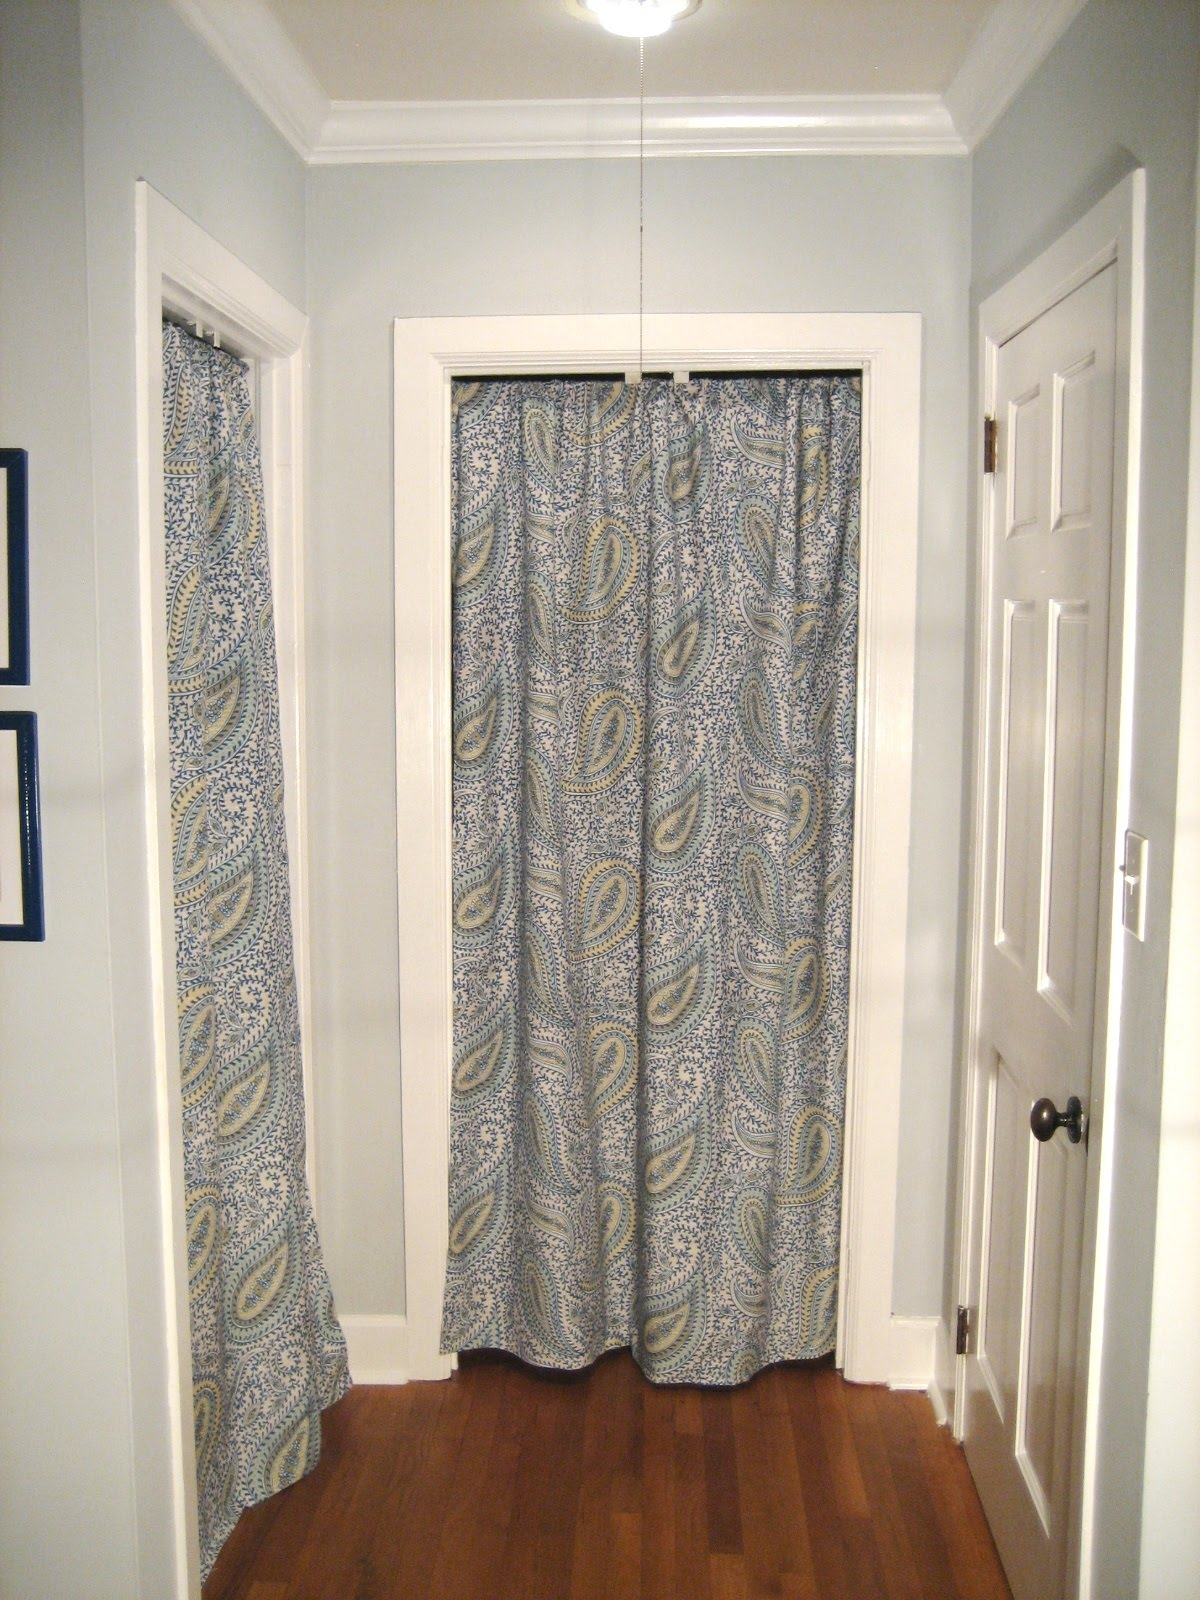 Beauteous Closet Curtains Walmart Roselawnlutheran With Regard To Fabric Doorway Curtains (Image 1 of 15)